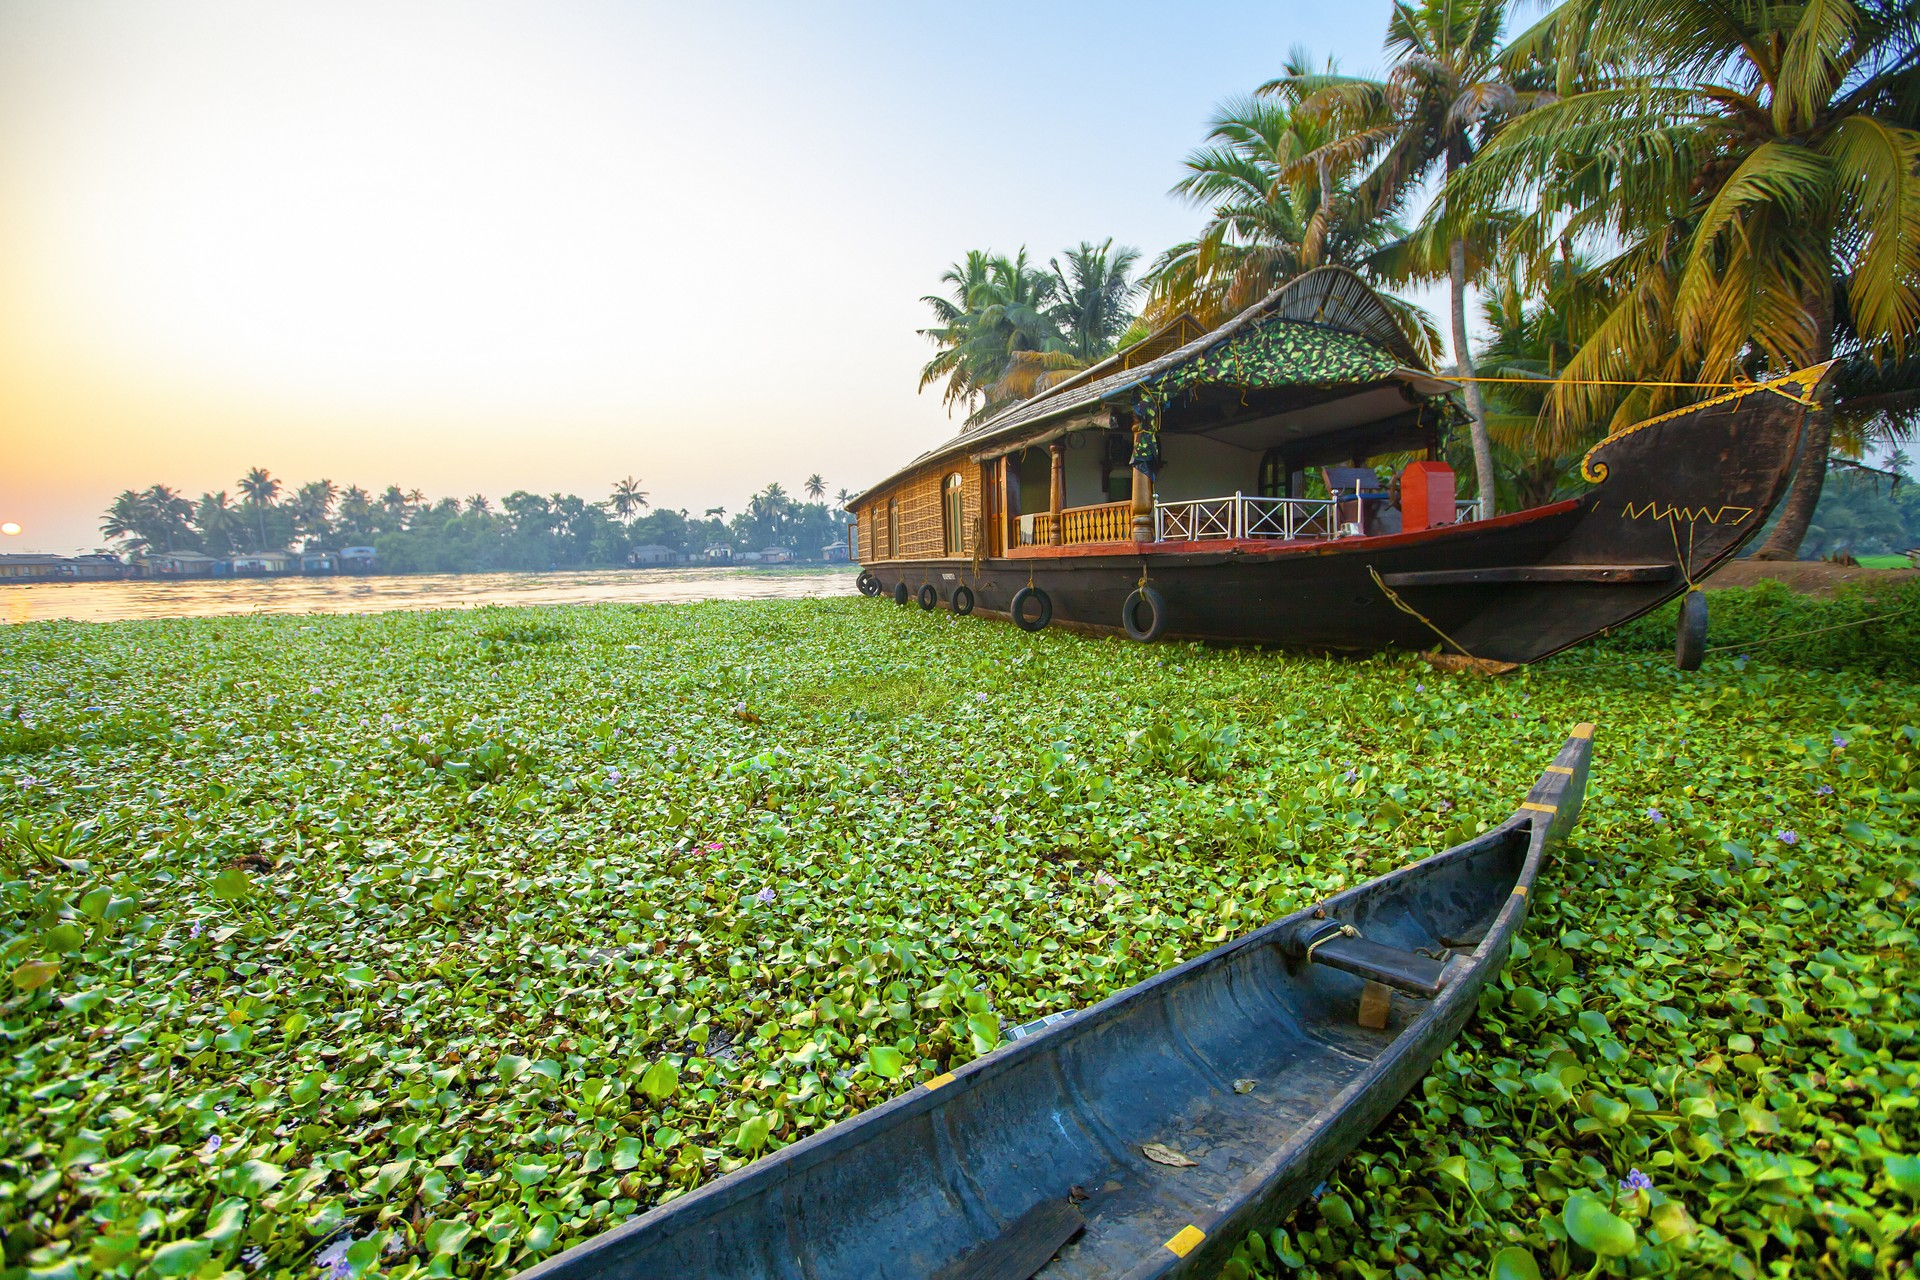 Houseboat in Kerala, India